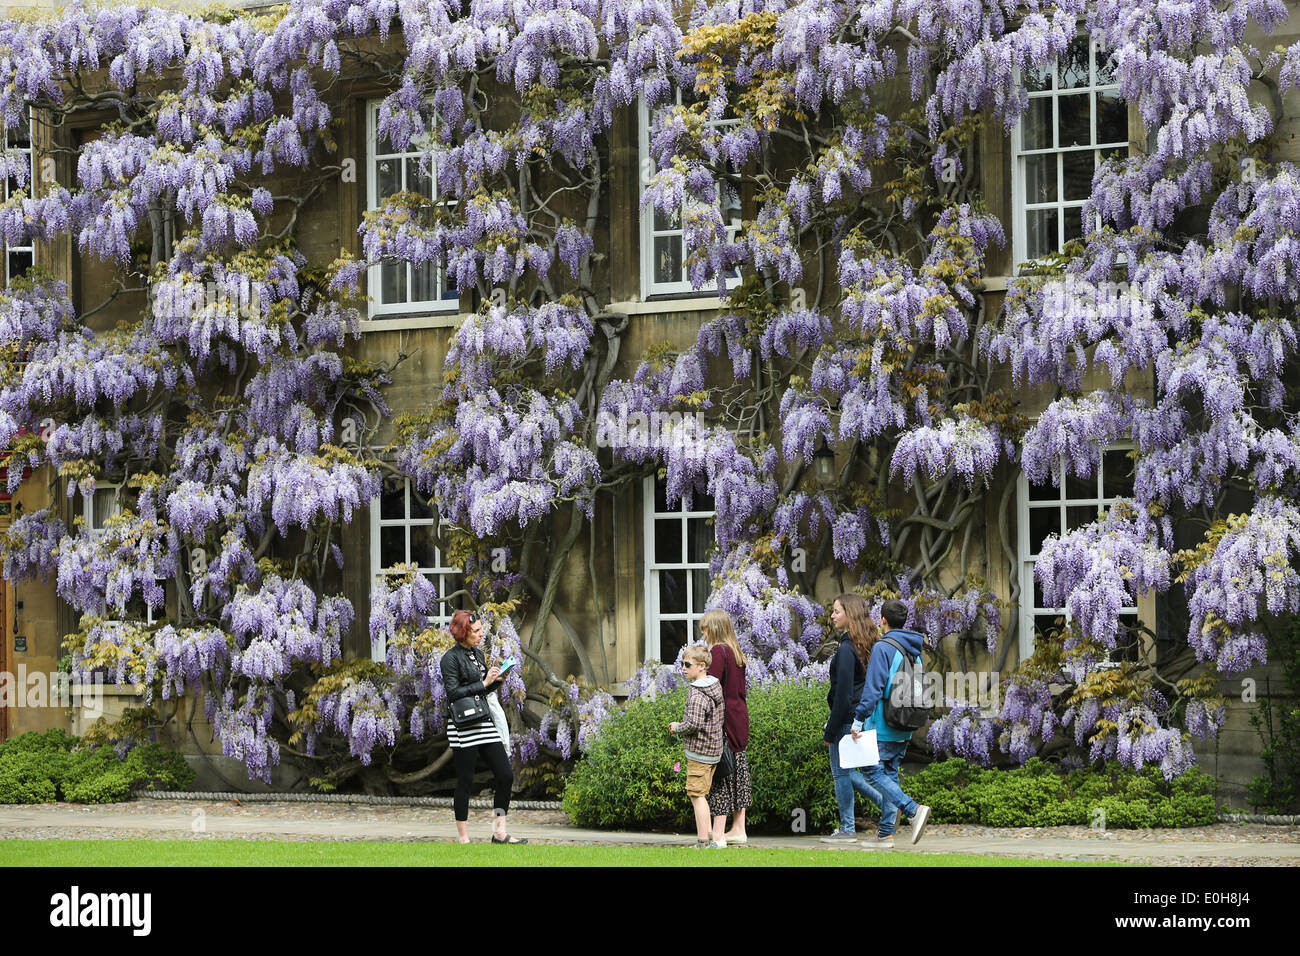 STUDENTS WALKING PAST THE WISTERIA  ON THE MASTER'S LODGE AT CHRIST'S COLLEGE CAMBRIDGE - Stock Image